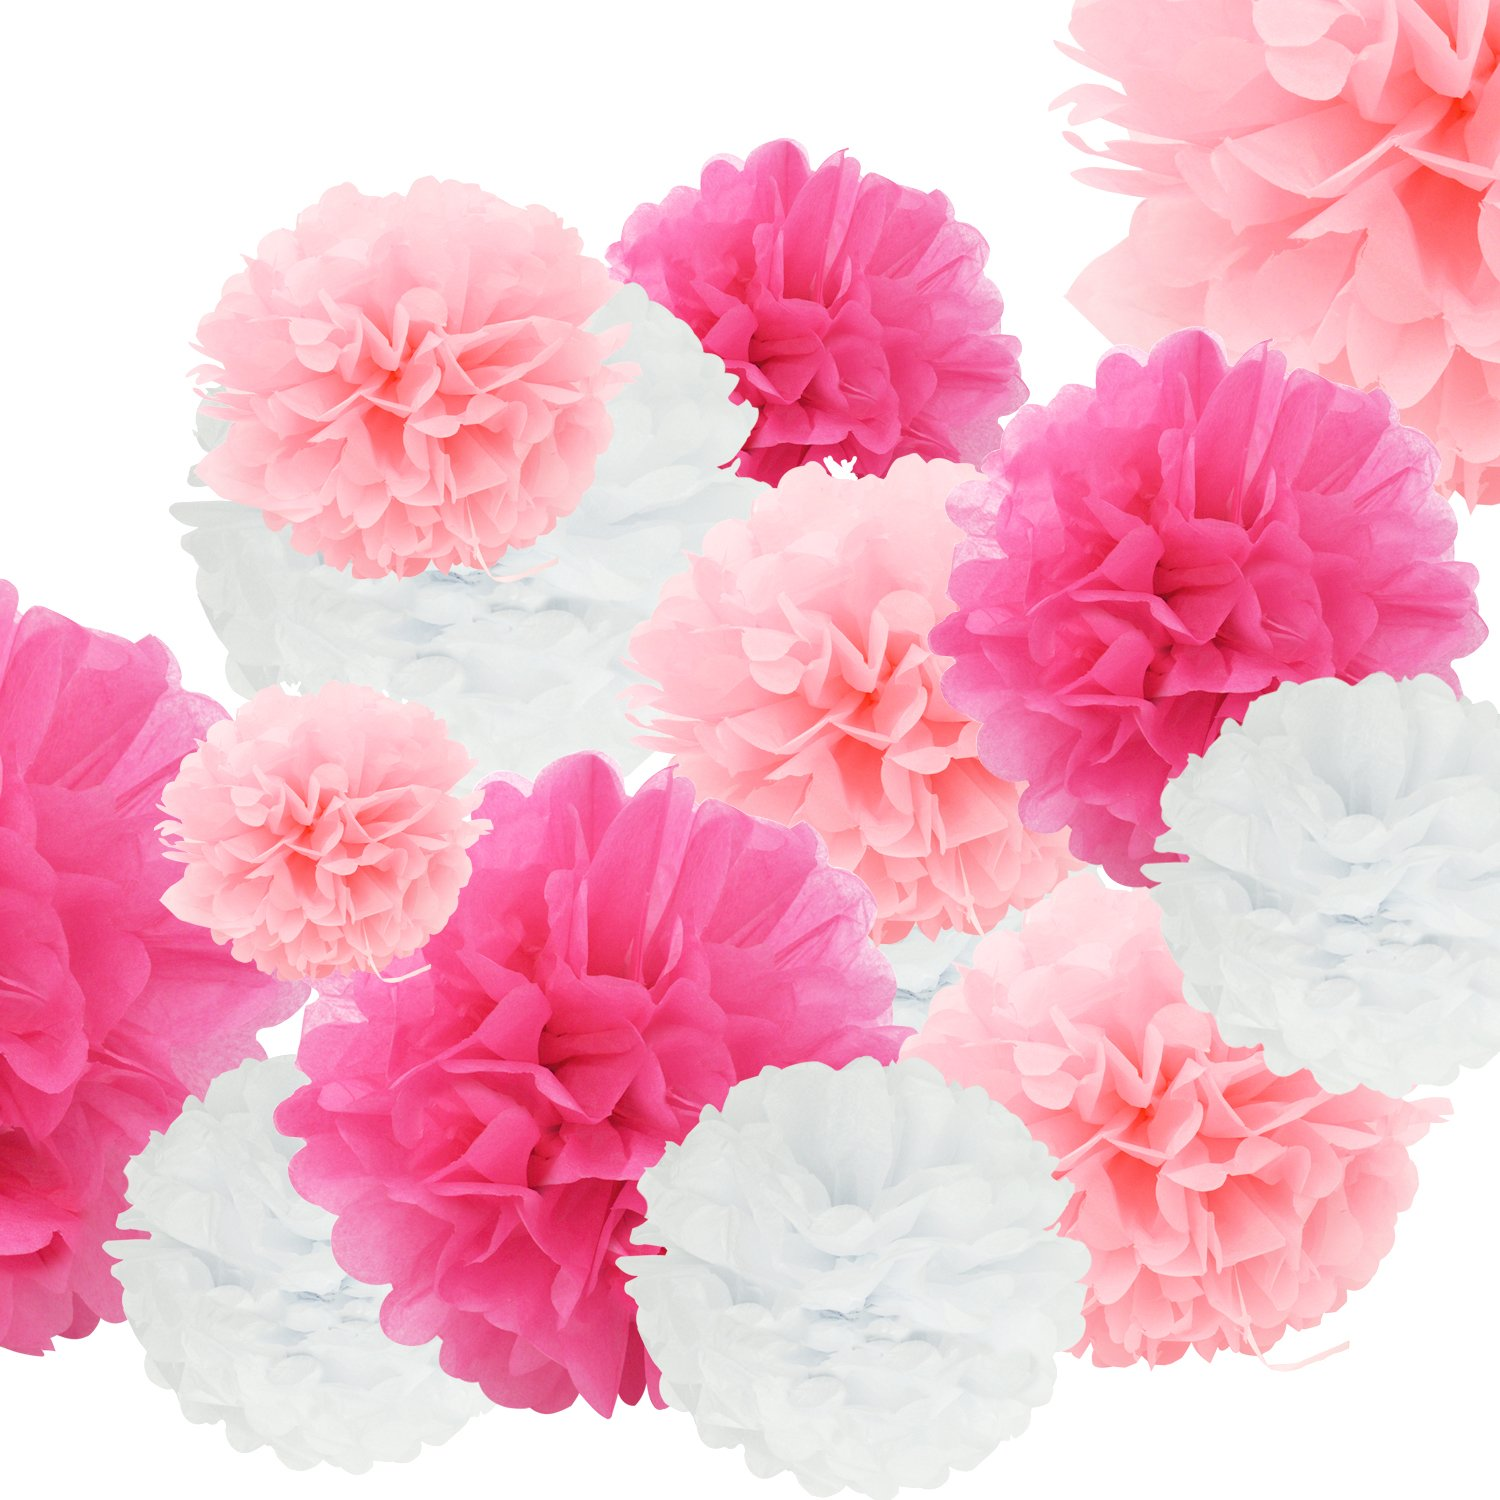 24pcs Craft Paper Tissue Pom Poms, Doubletwo Ceiling Decor Wall Decor; 12in 10in 8in Hanging Paper Pom-poms Flower Ball Wedding Party Outdoor Decoration Flowers Craft Kit (Pink White) DT-pompom